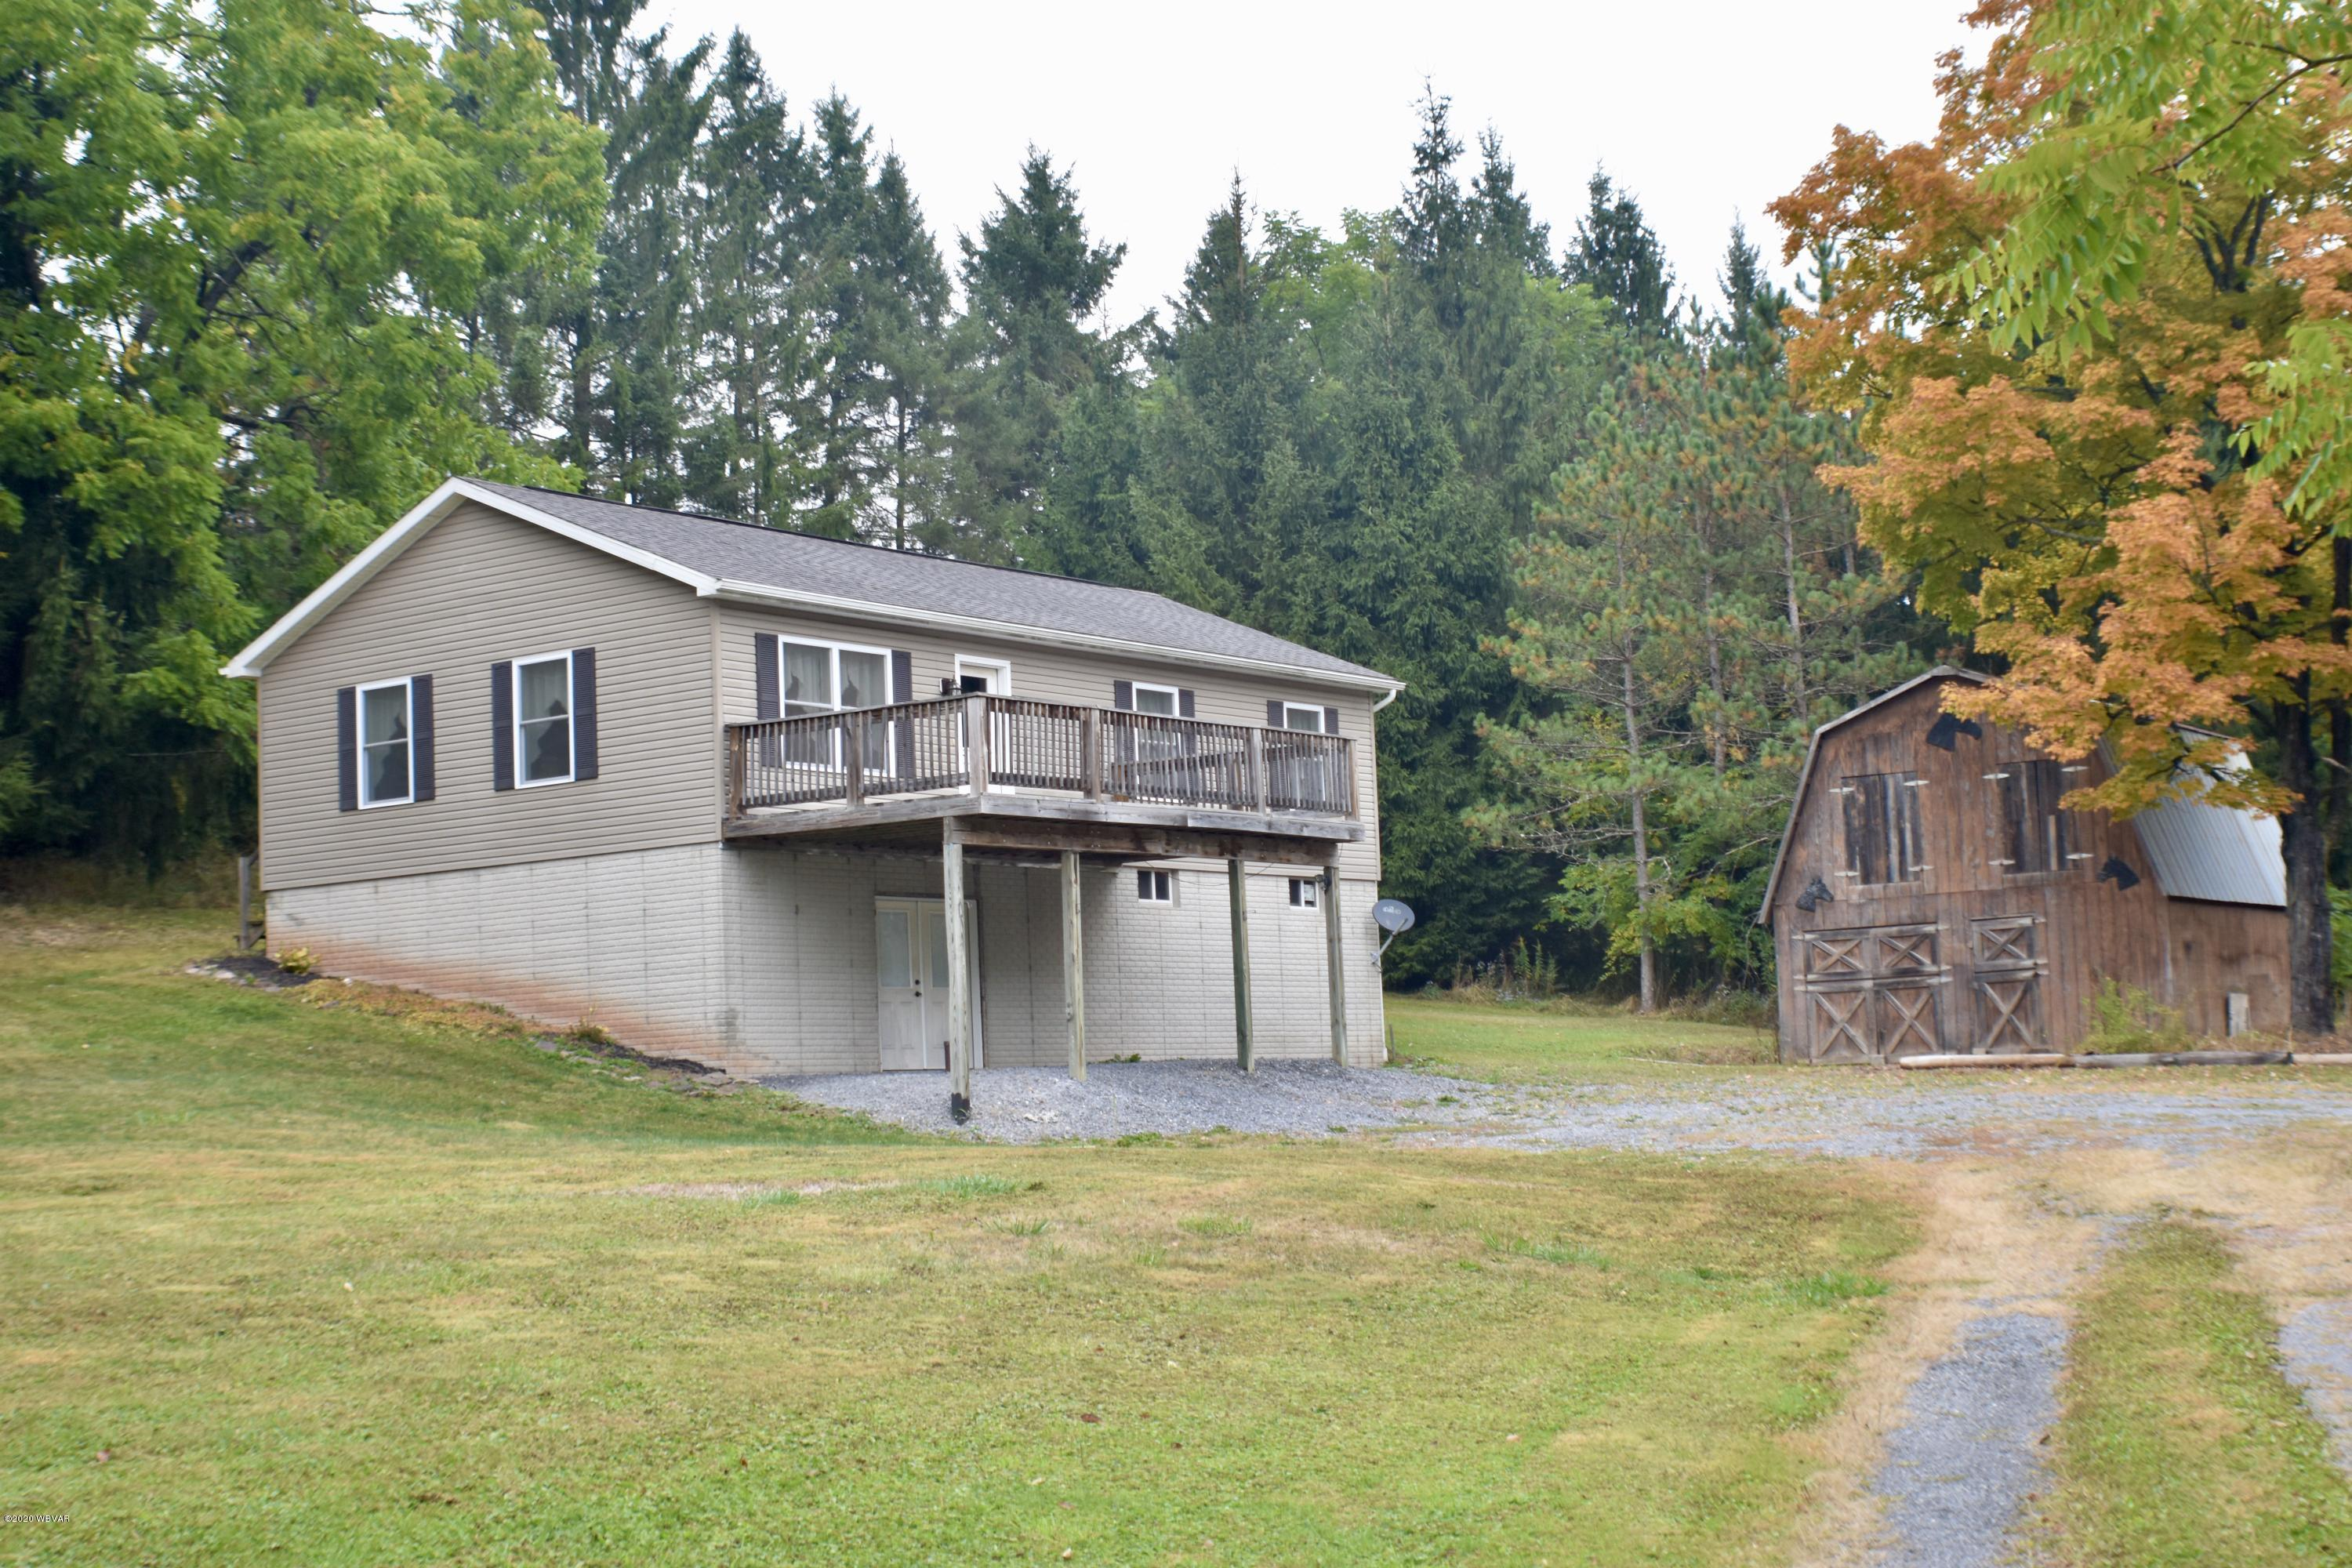 207 BAKERS ROAD, Trout Run, PA 17771, 3 Bedrooms Bedrooms, ,2 BathroomsBathrooms,Residential,For sale,BAKERS,WB-91189